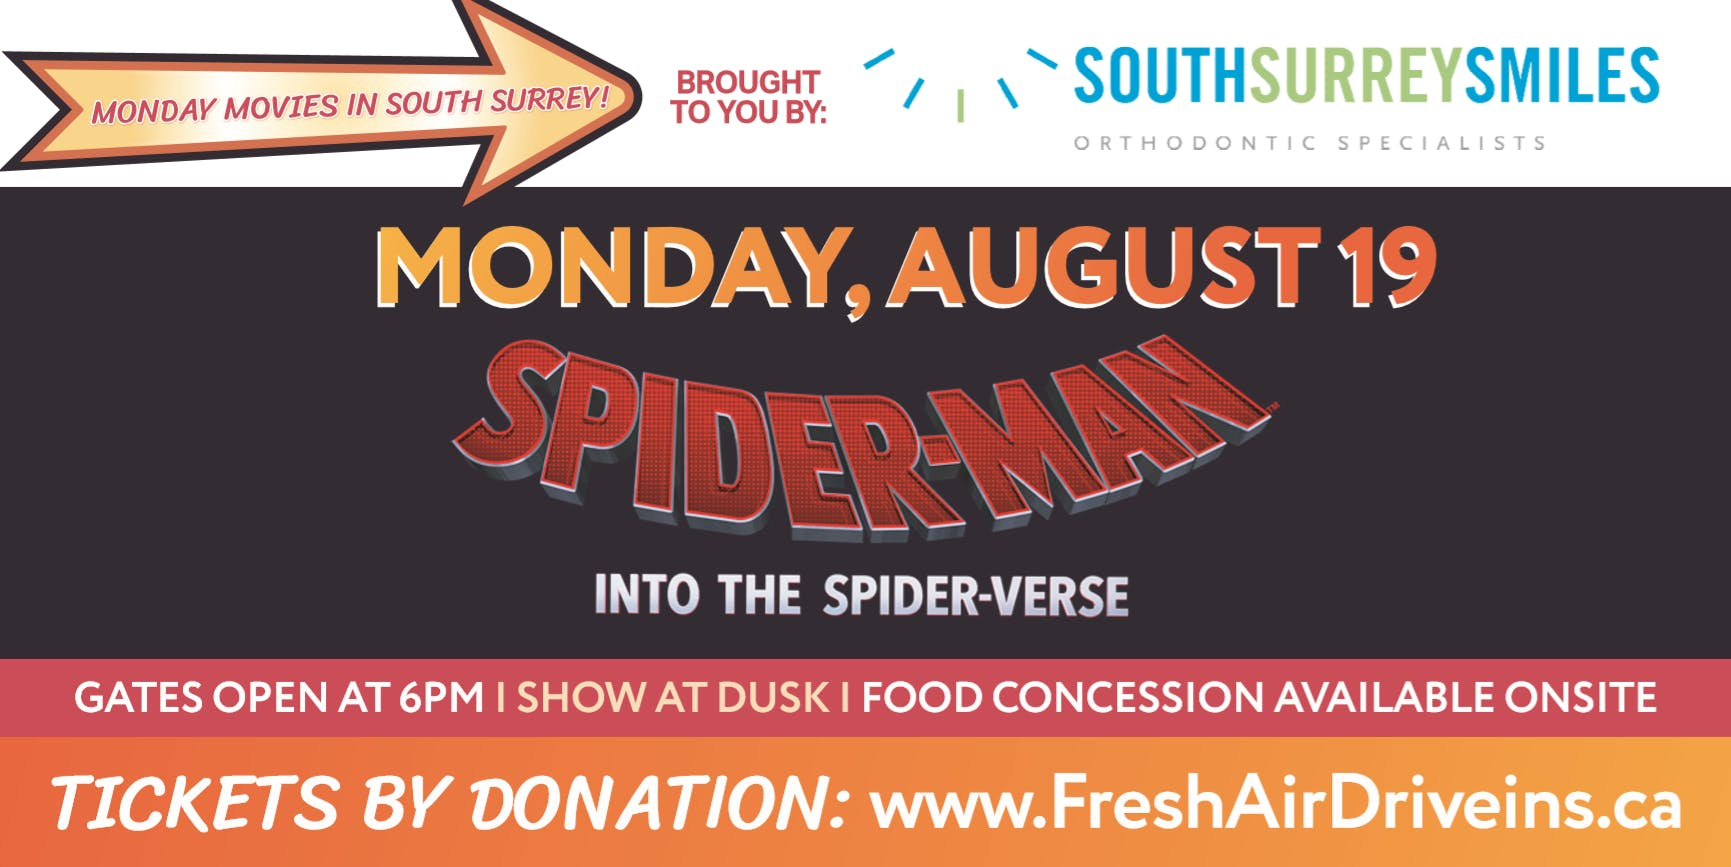 SPIDER-MAN: INTO THE SPIDERVERSE - South Surrey Smiles Drive-In - (Charity)